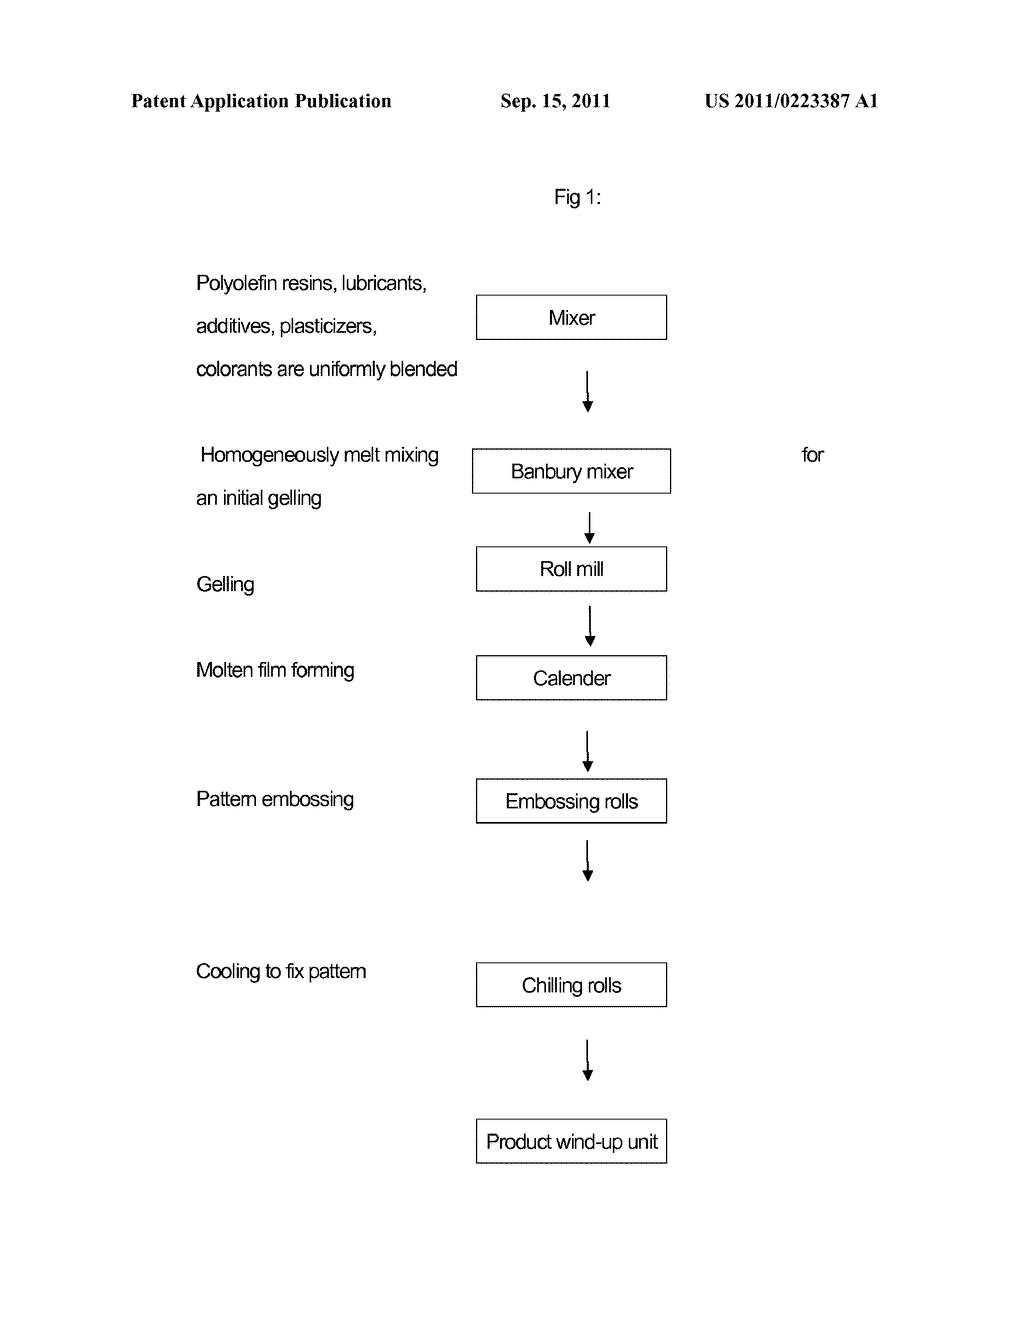 NON-PVC TYPE CALENDERED POLYOLEFIN SHEET AND THE PROCESS THEREOF